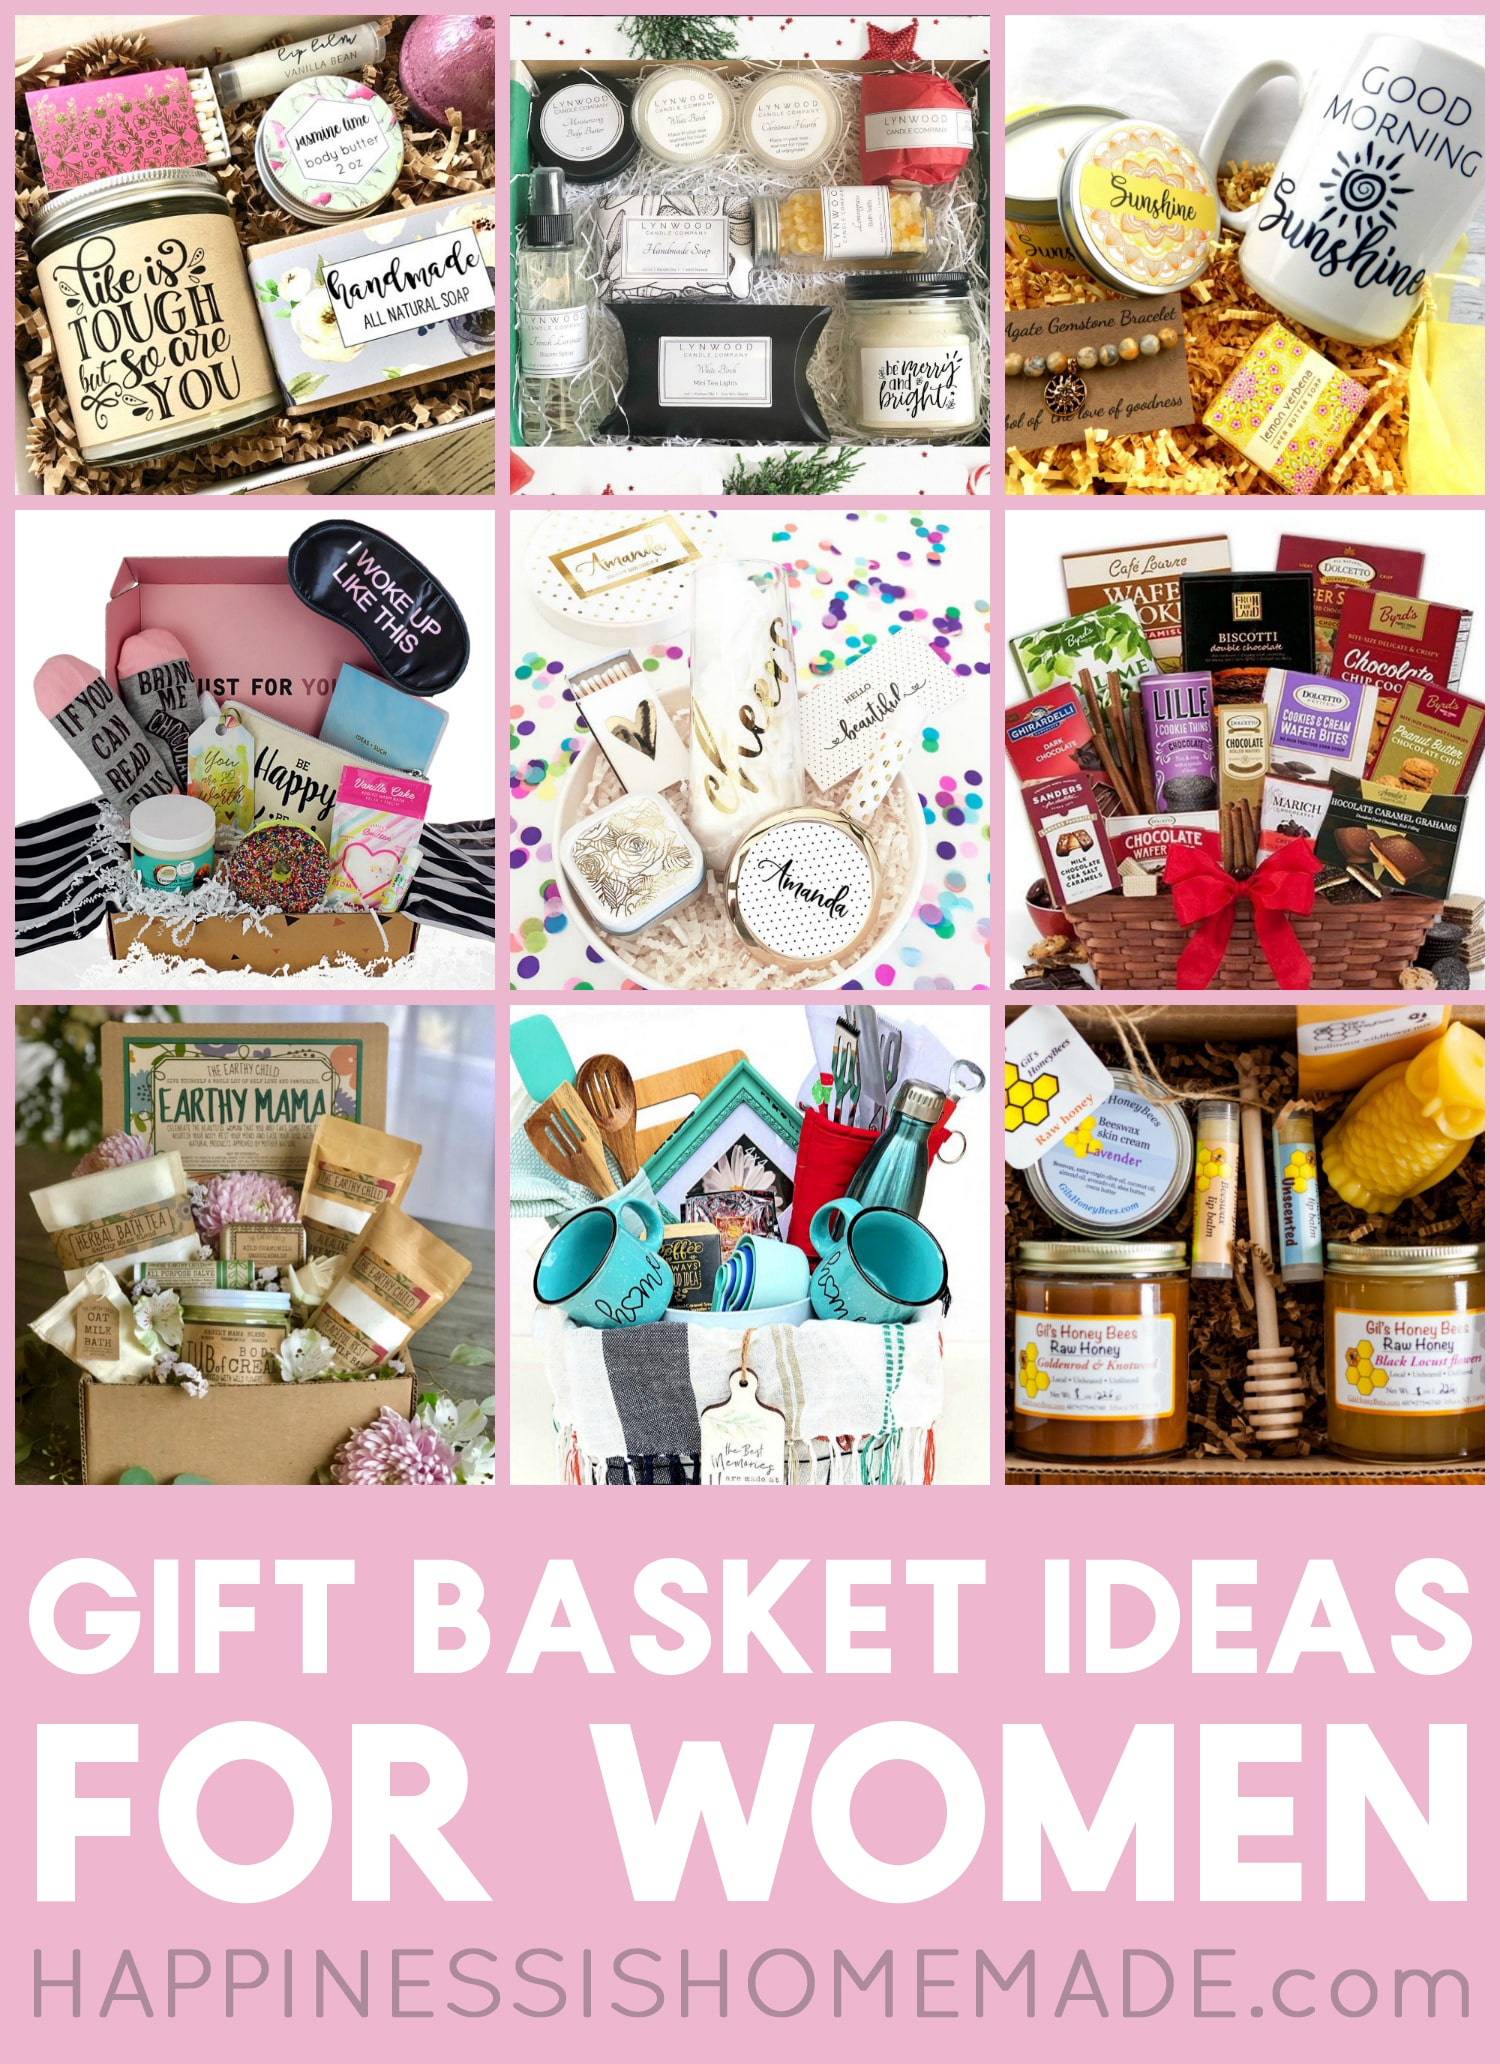 Gift Baskets for Women - Happiness is Homemade